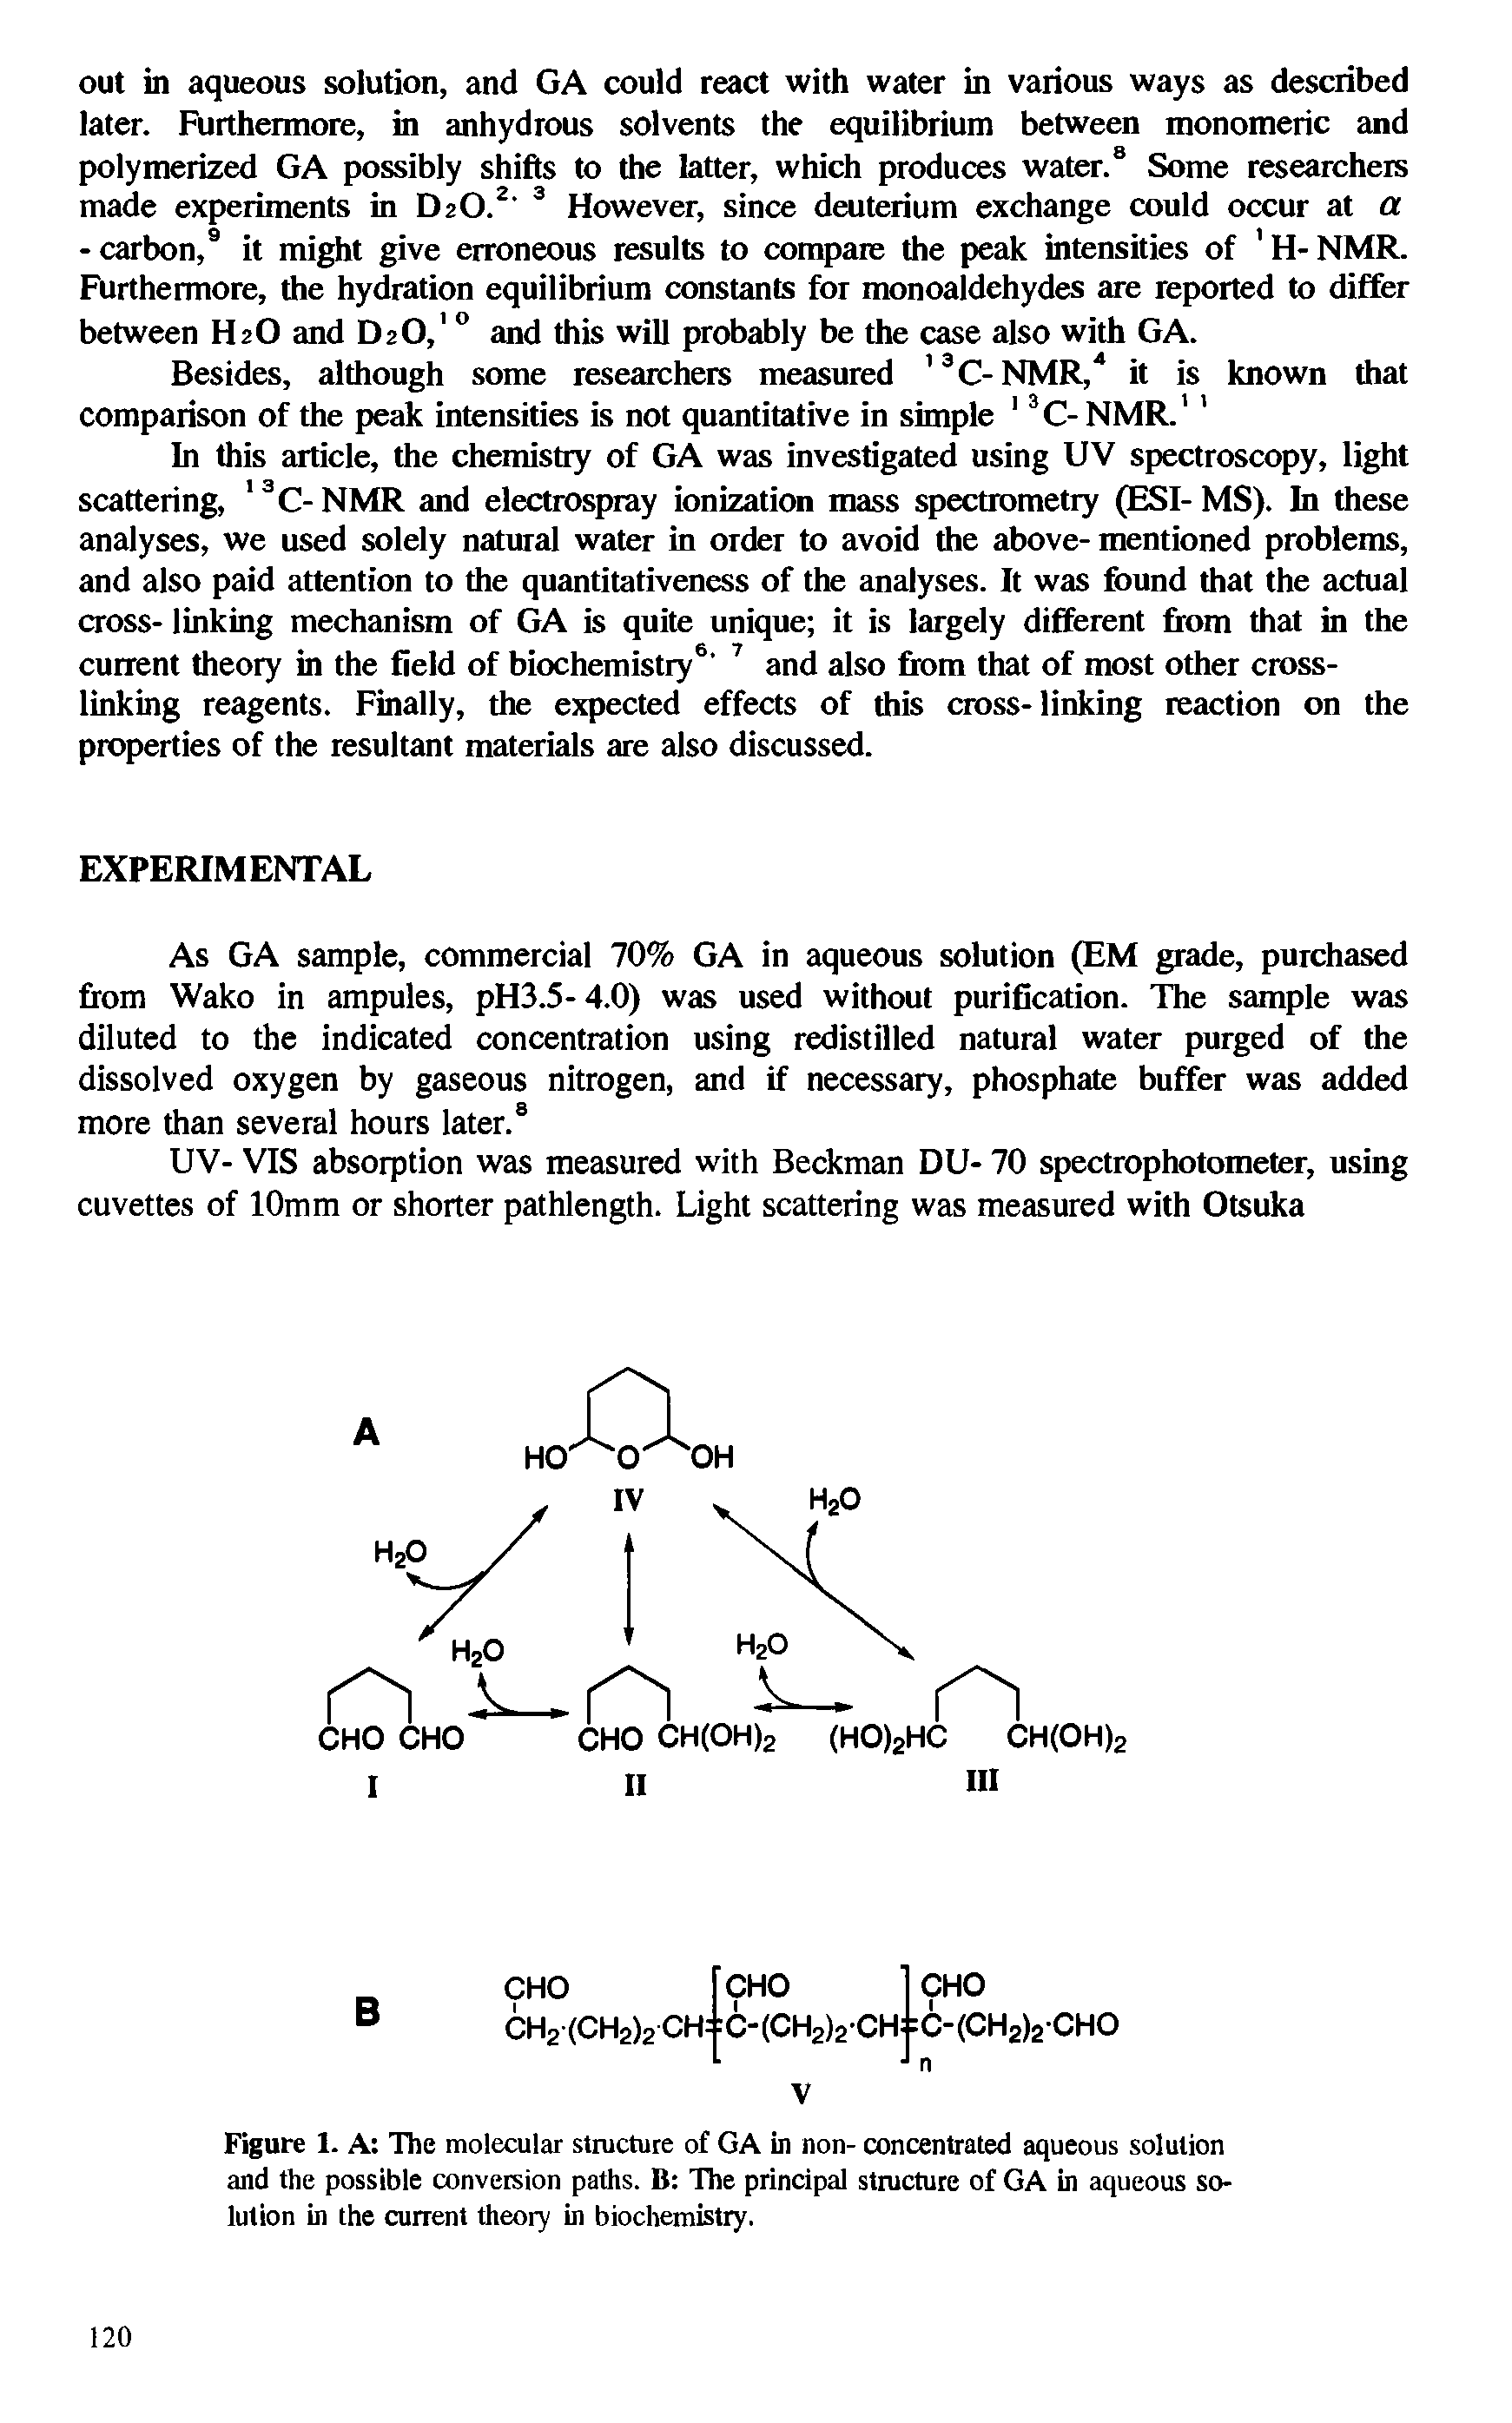 "Figure 1. A The <a href=""/info/molecular_structure"">molecular structure</a> of GA in non- <a href=""/info/concentration_in_aqueous"">concentrated aqueous</a> solution and the possible conversion paths. B The principal structure of GA in <a href=""/info/aqueous_solutions"">aqueous solution</a> in the current theory in biochemistry."